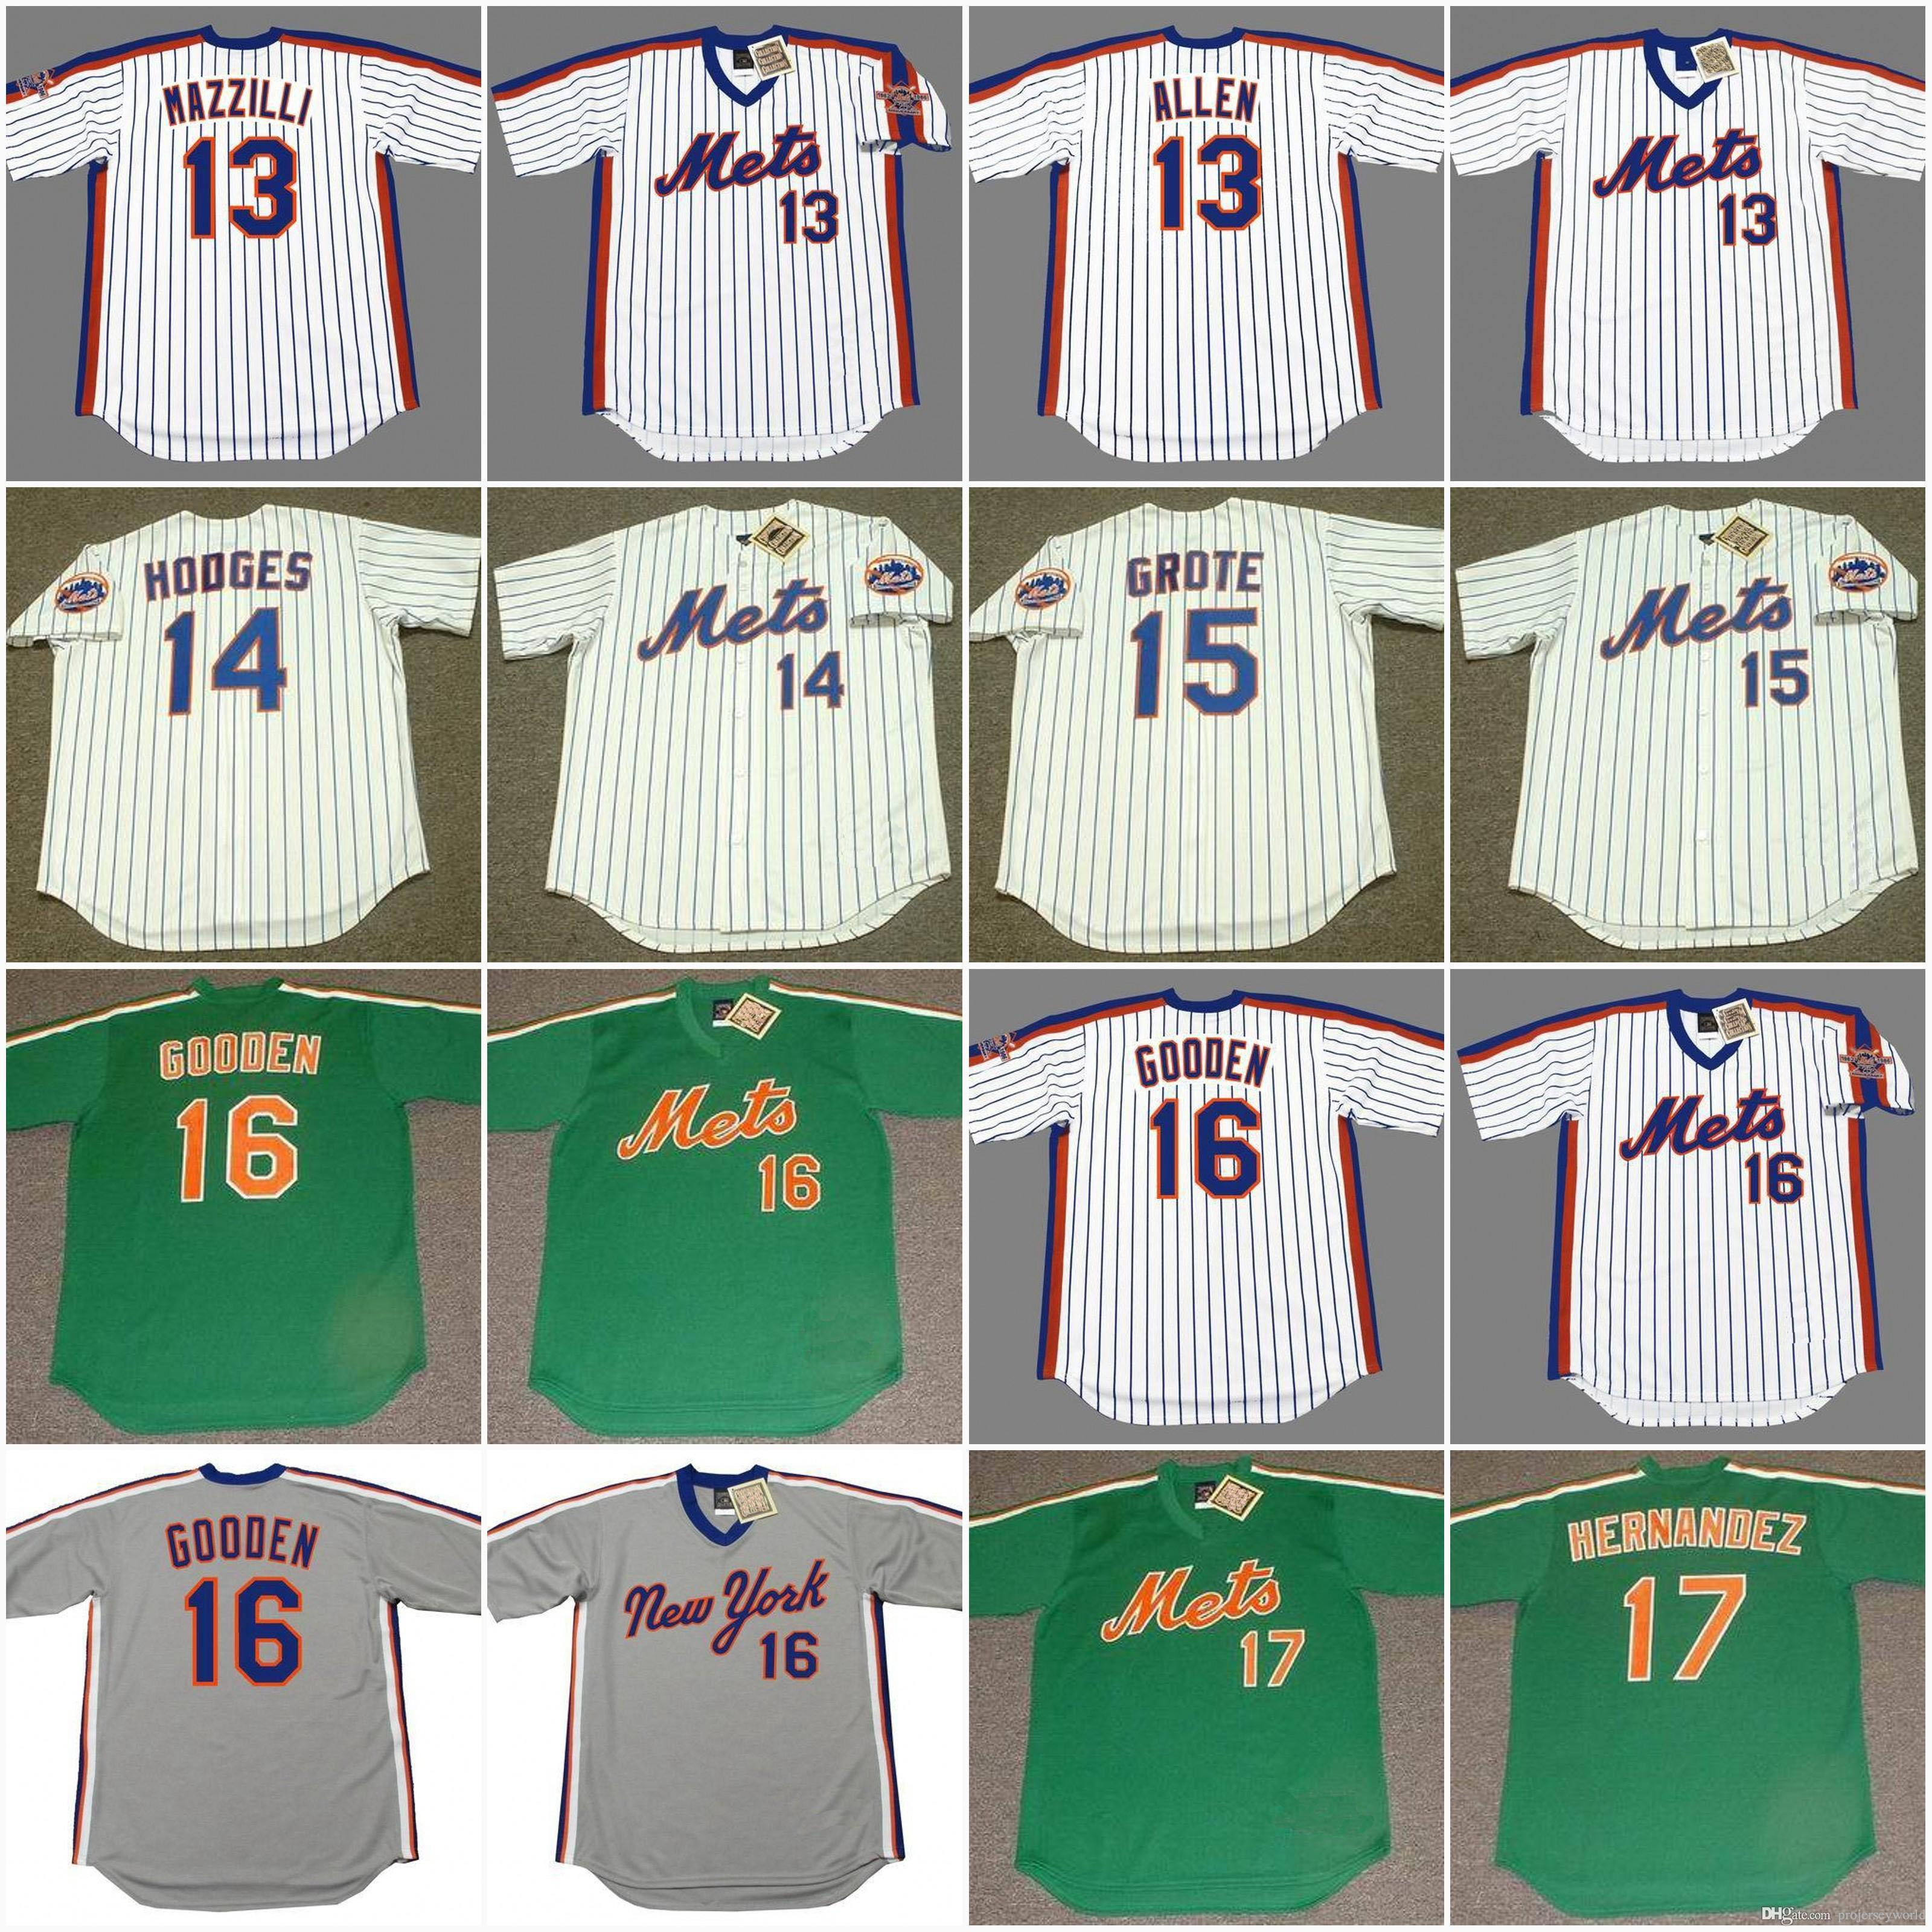 3c15f2e51a4 ... throwback jersey  16 dwight gooden 17 keith new york mets cooperstown  13 lee mazzilli 1986 13 neil allen